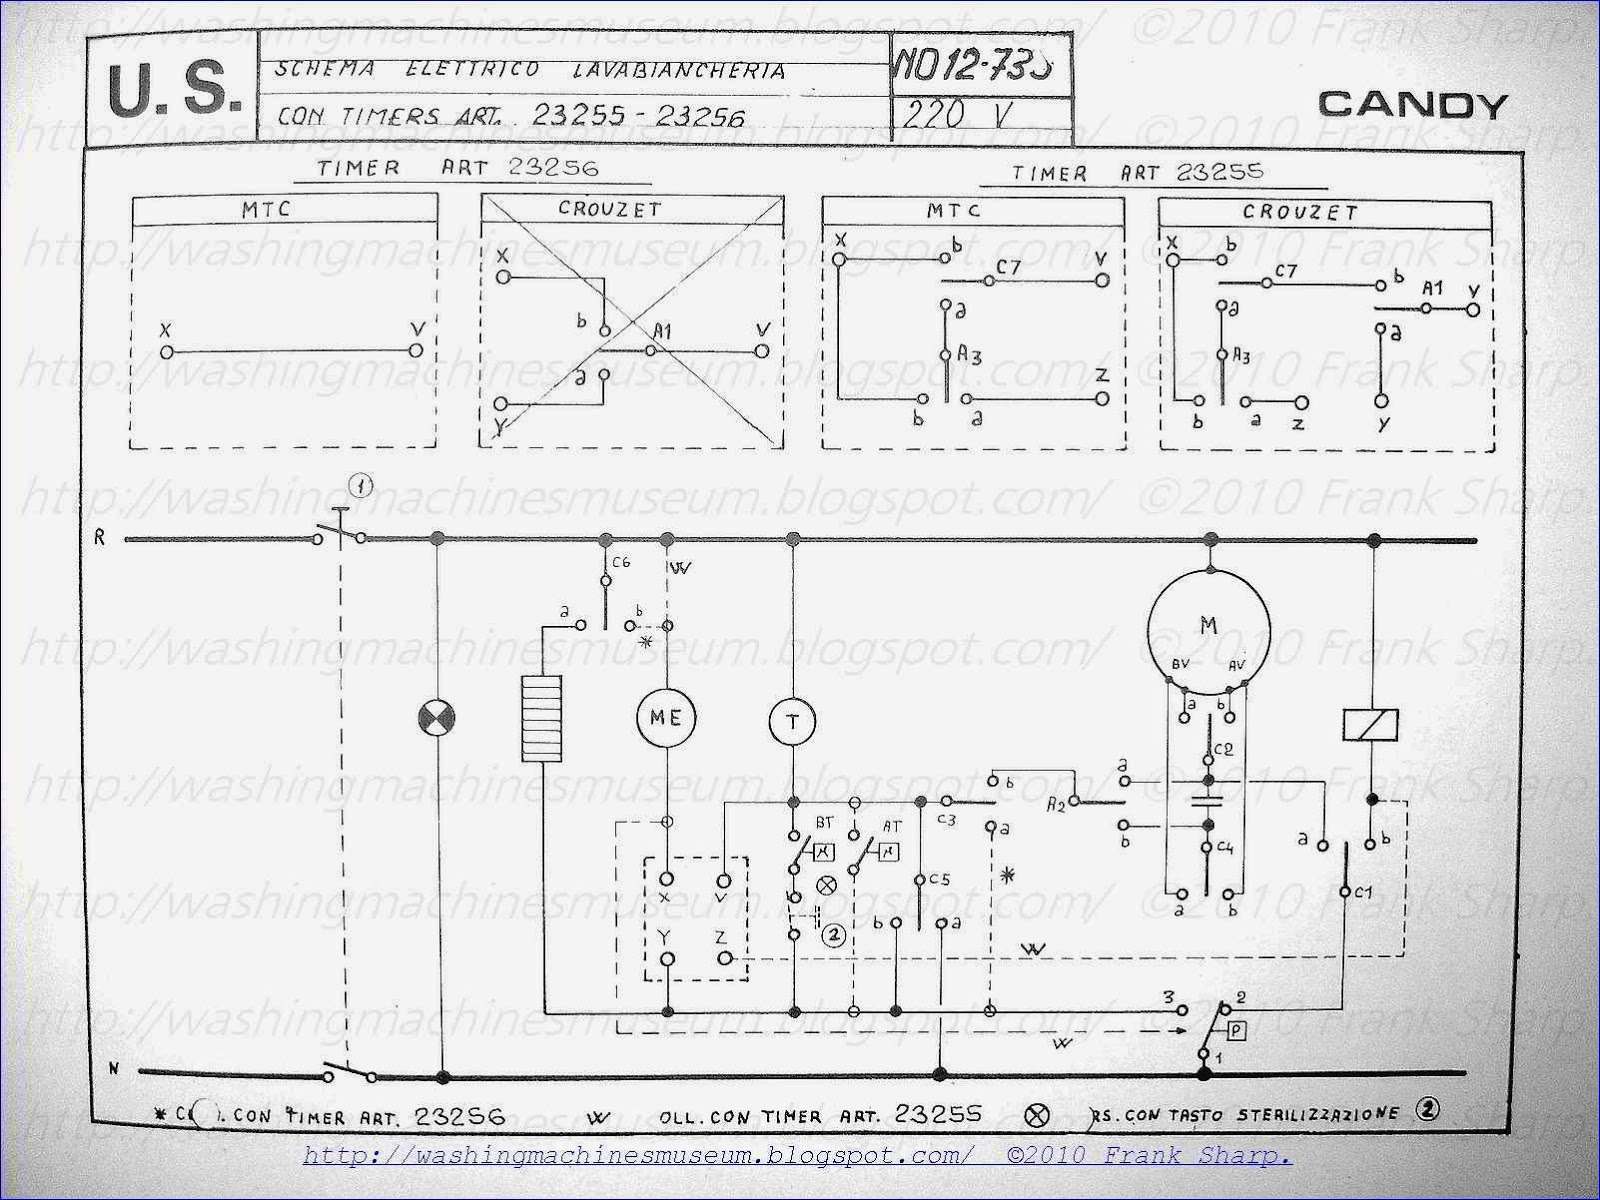 Washing Machine Schematics List Of Schematic Circuit Diagram Hotpoint Wiring Washer Rama Museum Candy With Timer 23255 23256 Rh Washingmachinesmuseum Blogspot Com Manuals For Whirlpool